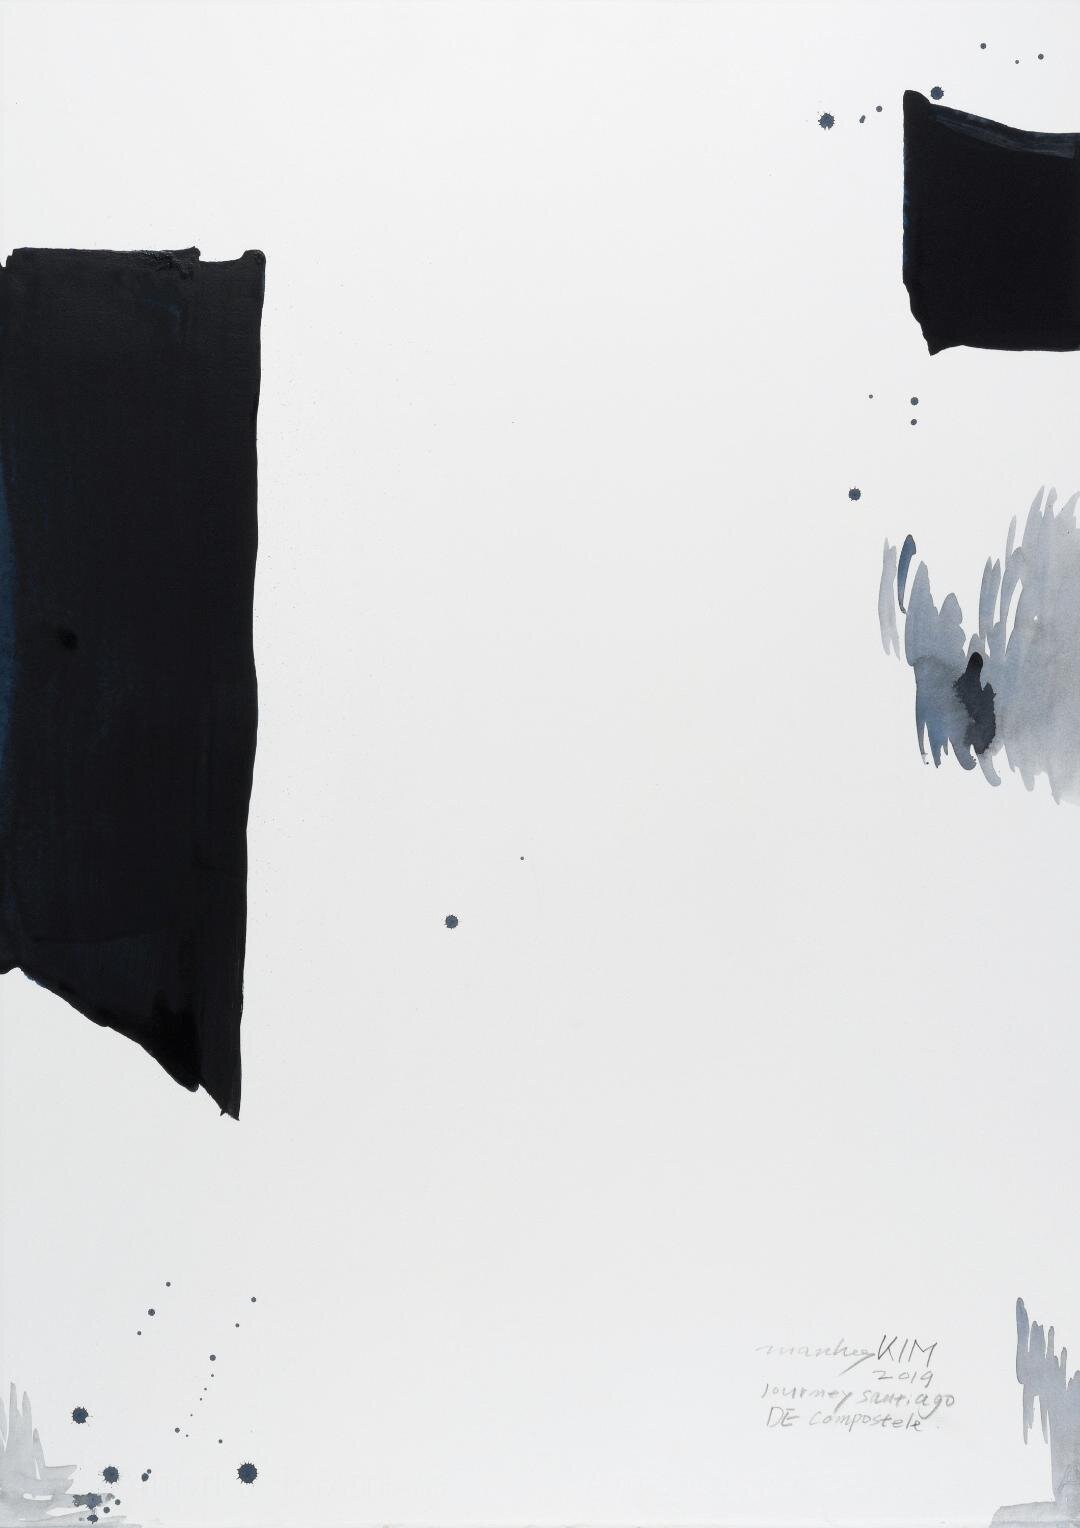 """Journey Santiago DE Compostele 2, 2019, Acrylic on Paper, 30""""x22""""  abstract vertical minimalistic painting mostly white, one black bar on each side"""